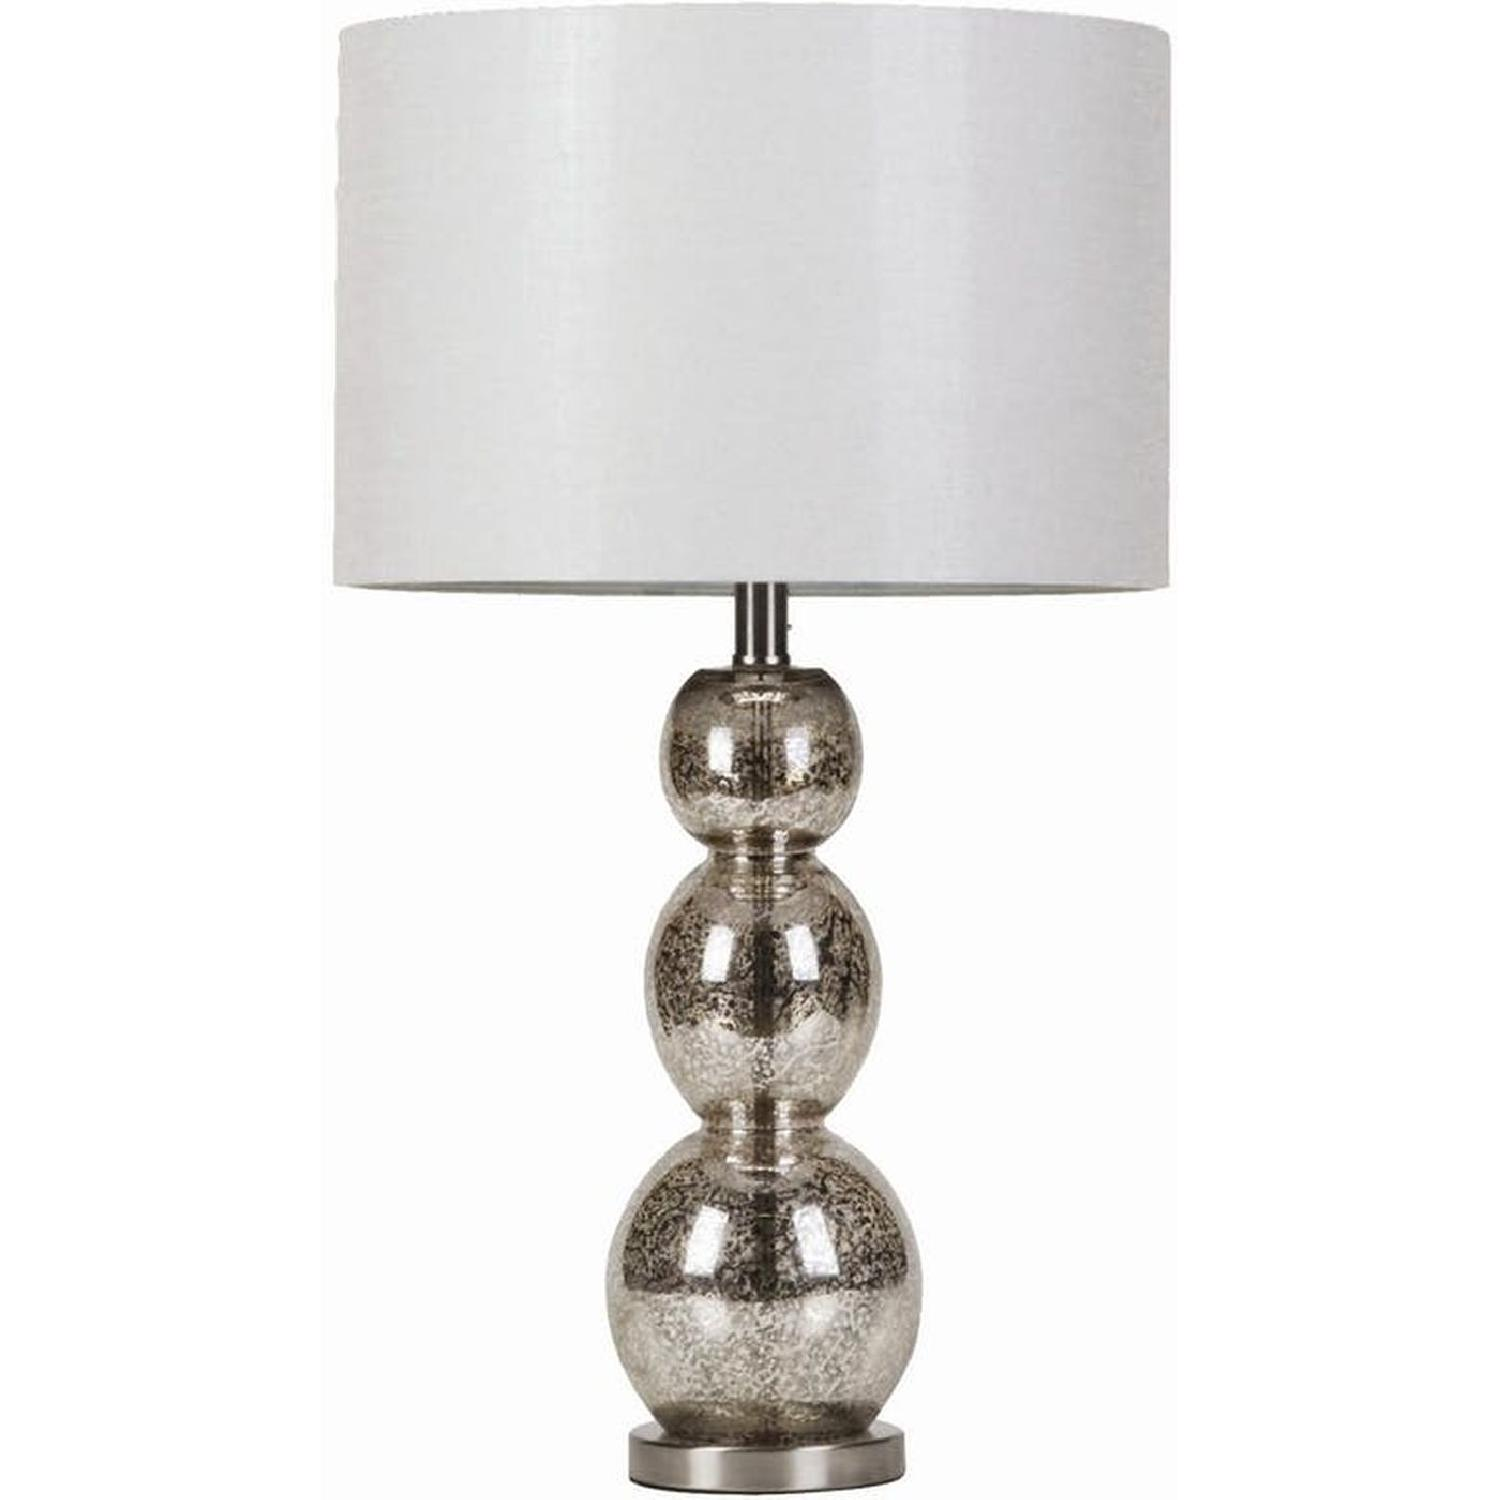 Modern Table Lamp w/ Base of Antique Silver Spheres - image-0